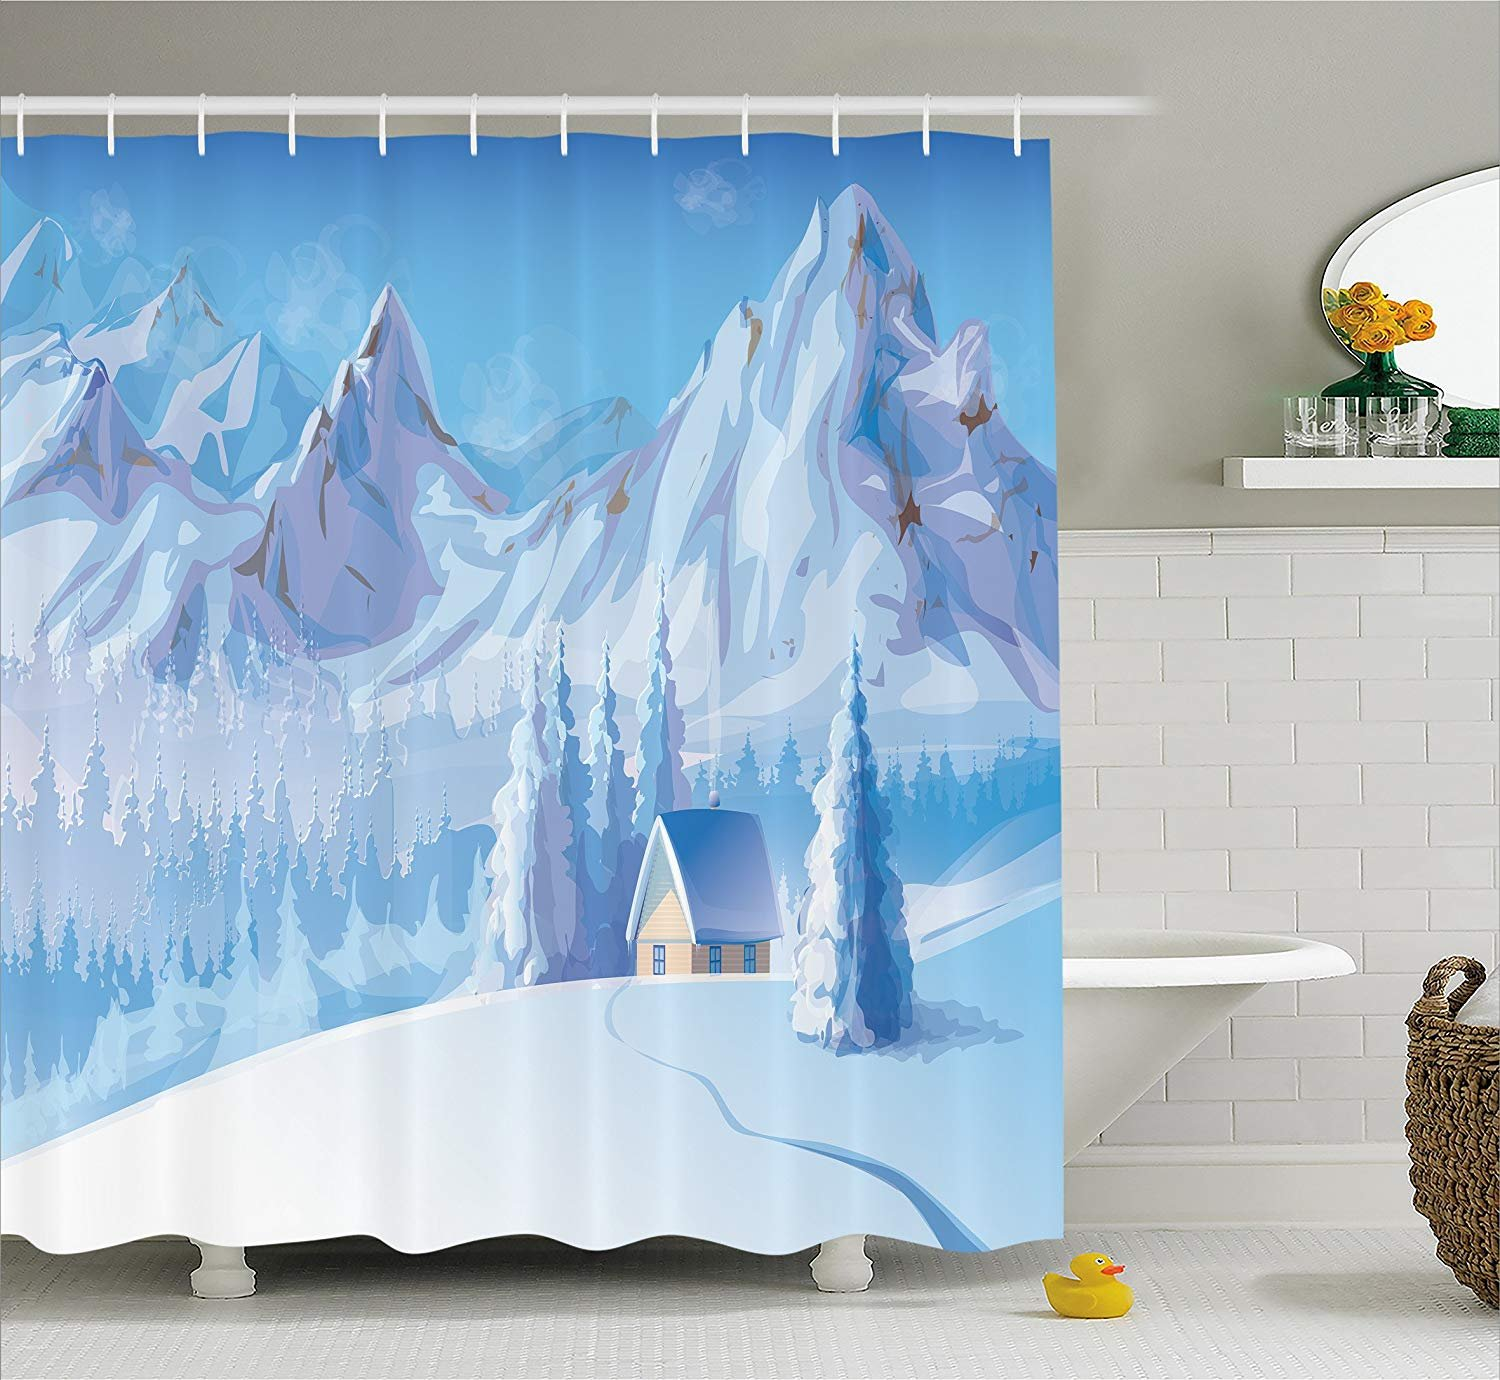 Eurag Winter Decorations Shower Curtain, Little House Below Majestic Mountains in Winter Ice Blizzard Frozen Back Decor, Fabric Bathroom Decor Set Hooks, 69W X 72L inches